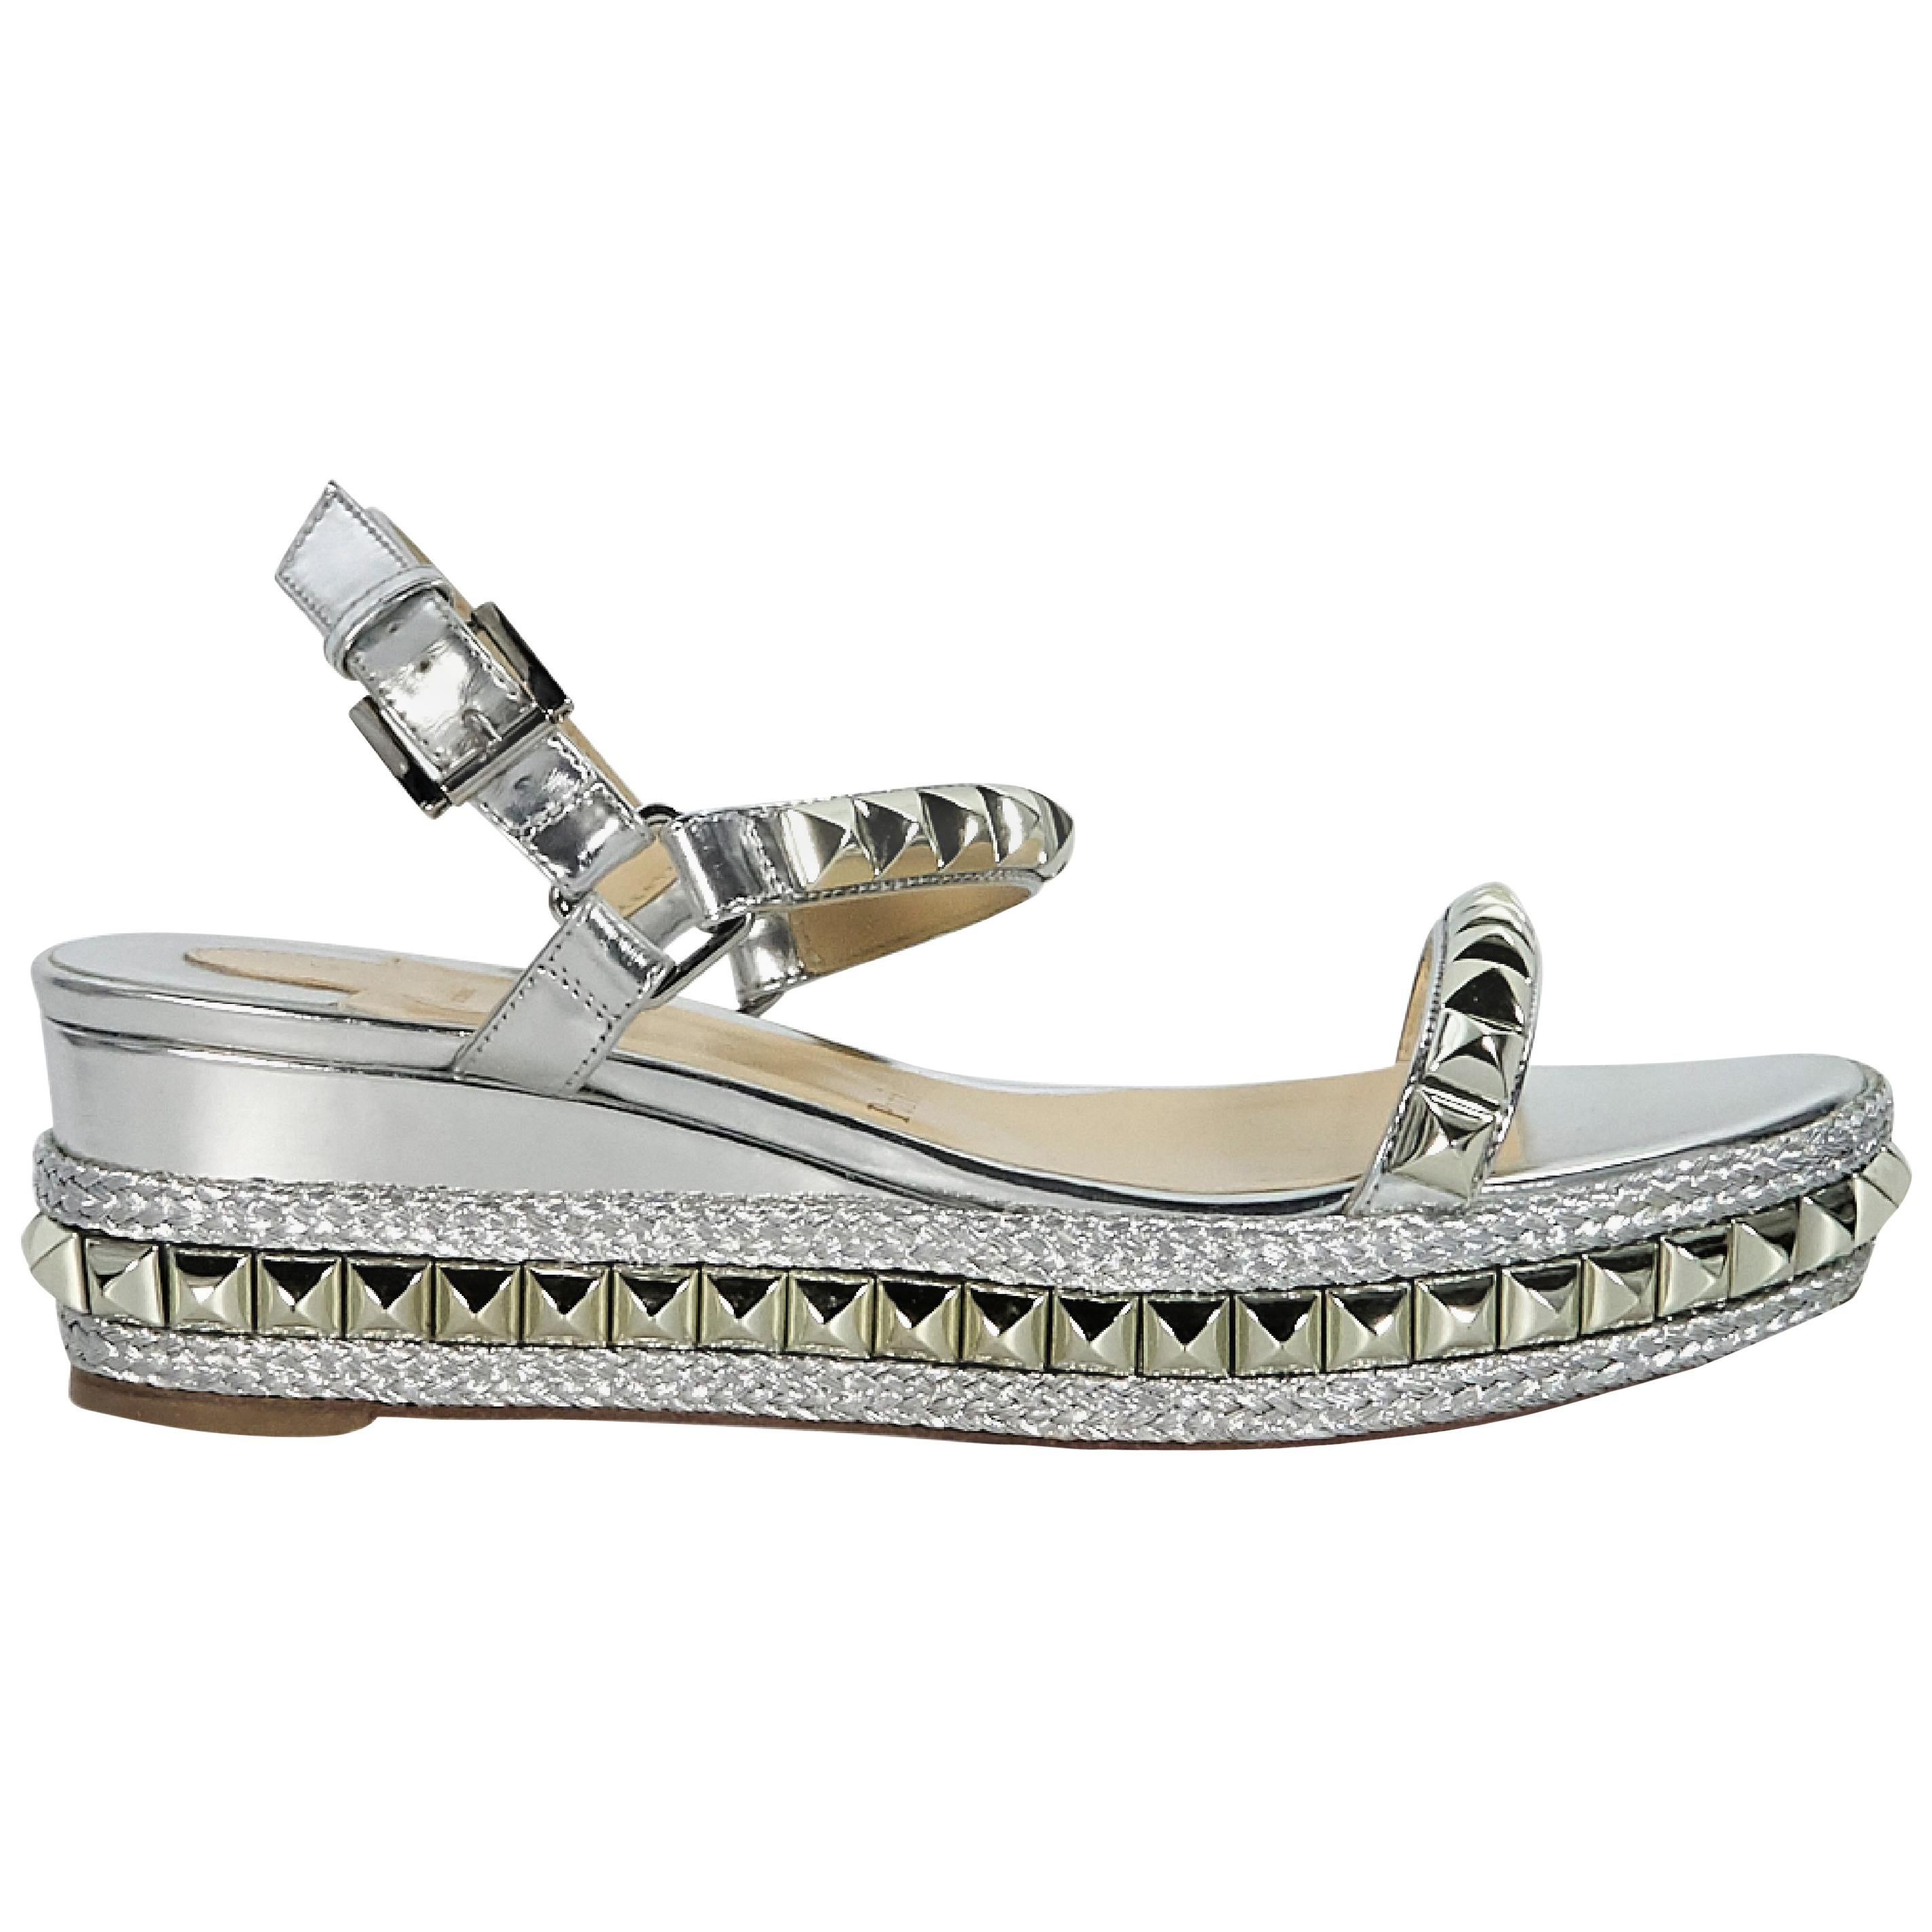 730087feb7c5 Christian Louboutin Silver Studded Cataclou 60 Sandals For Sale at 1stdibs